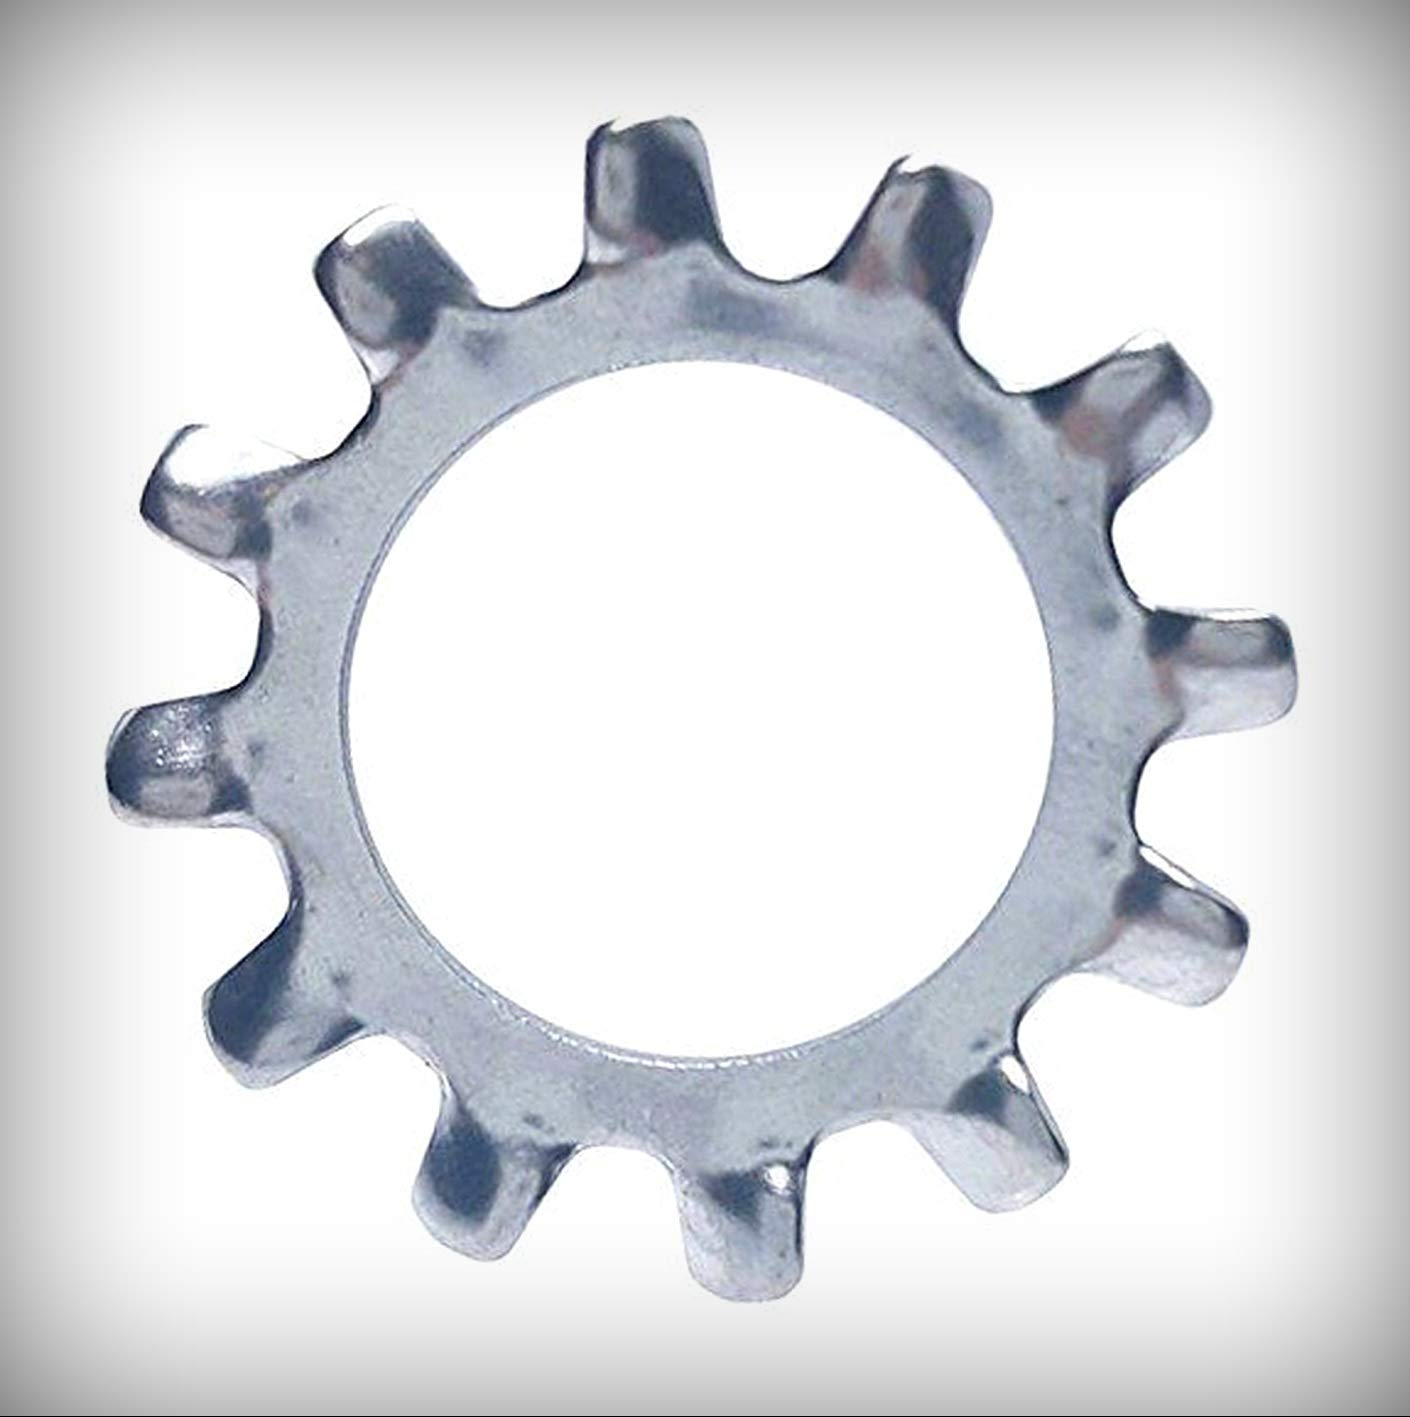 New Lot of 50 Pcs 5//16 External Tooth Star Lock Washers 410 Stainless Steel Set #Lig-0057NG Warranity by Pr-Mch